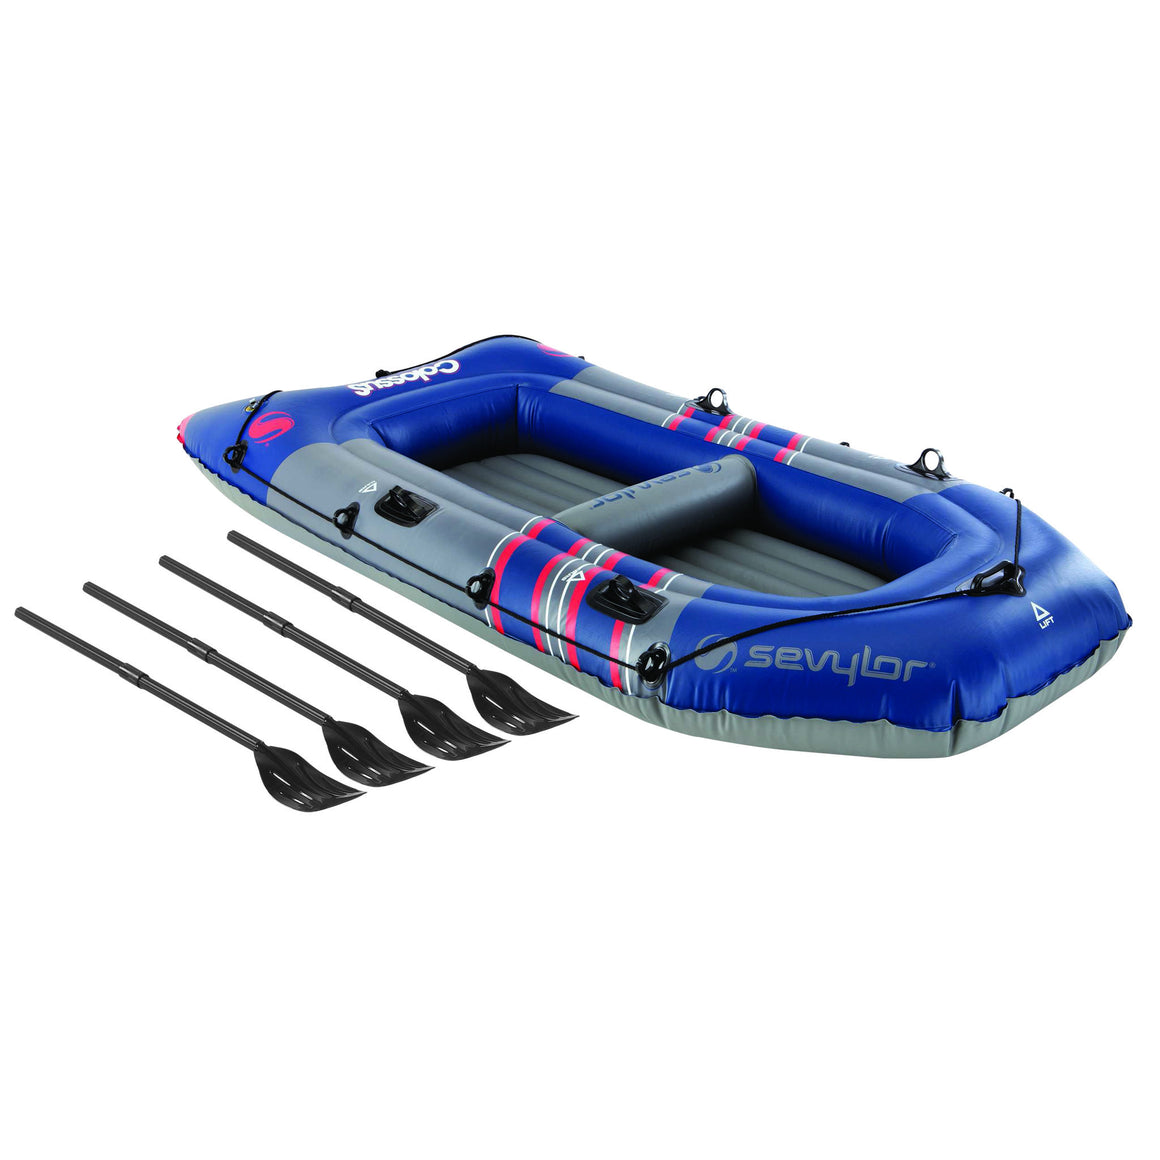 Sevylor (4 Person) Colossus Boat (with Oars) - Freedom Inflatables